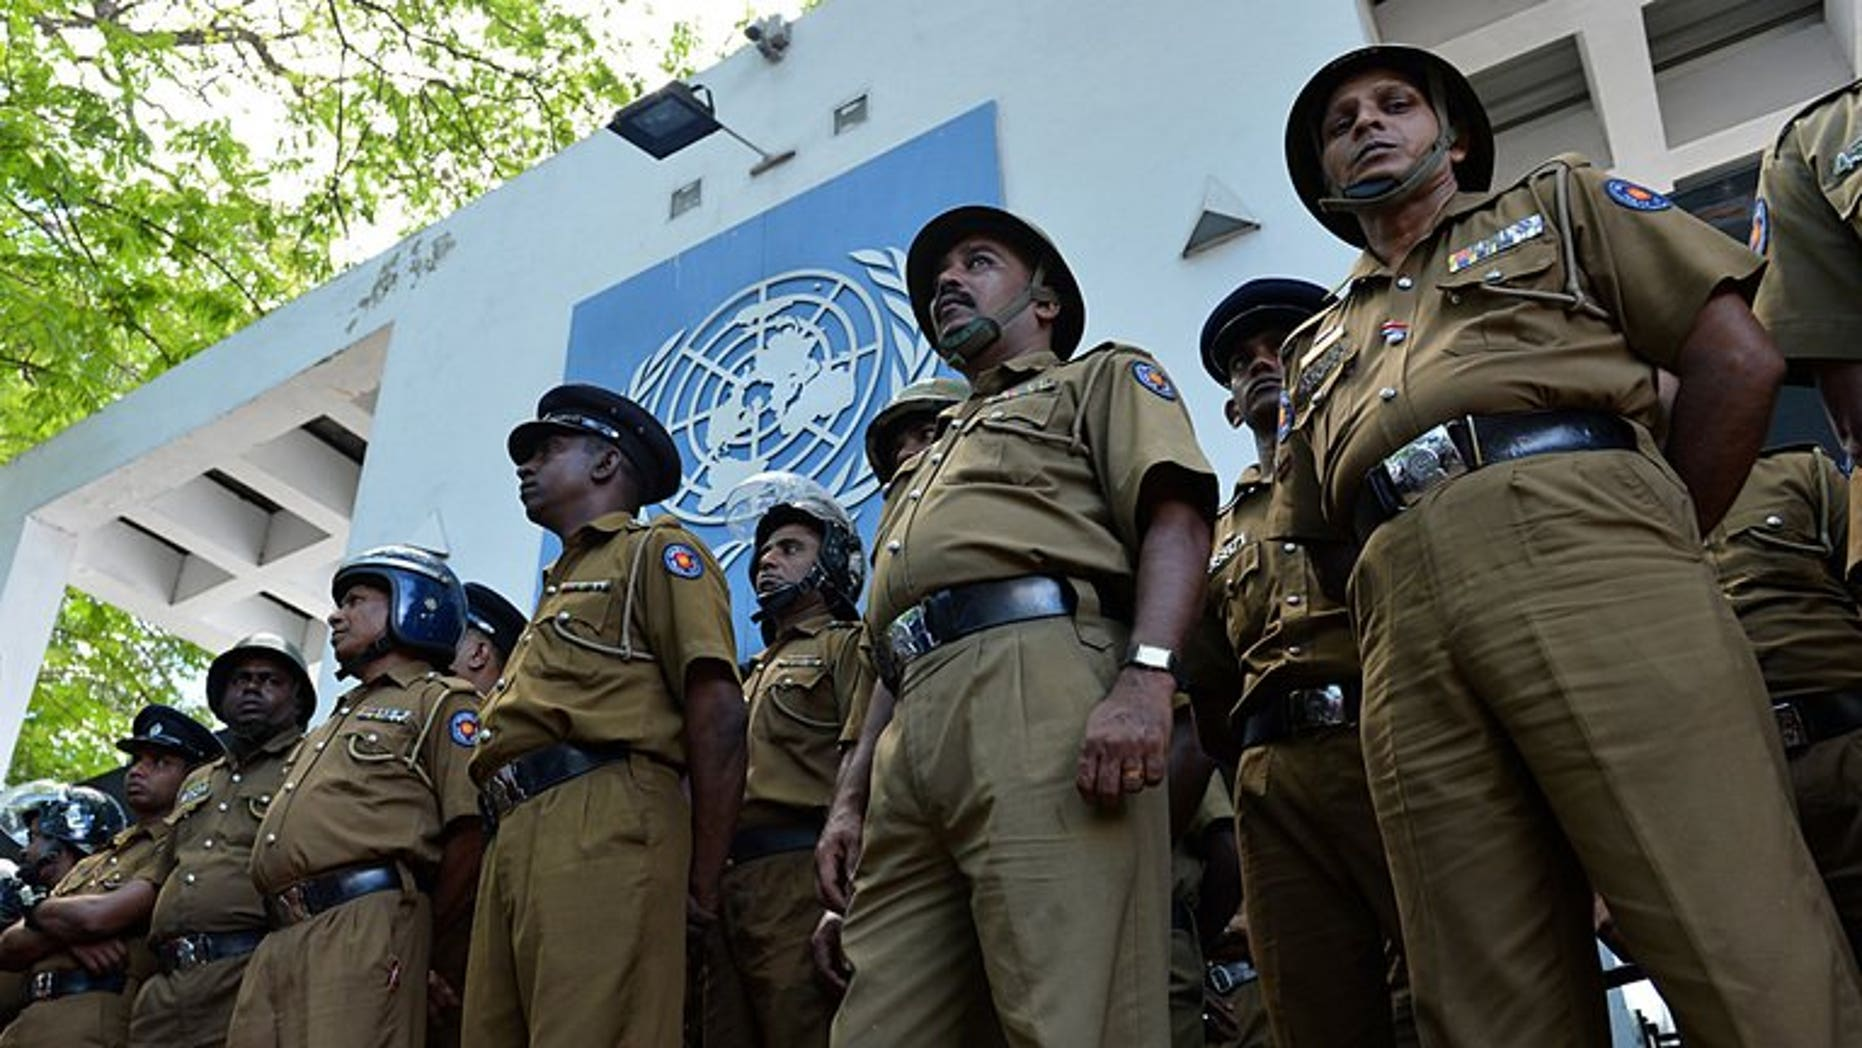 Sri Lankan police stand guard outside the UN office in Colombo on August 31, 2013. Sri Lankan police have arrested a navy officer suspected of involvement in smuggling people in fishing boats to Australia, officials said Saturday.